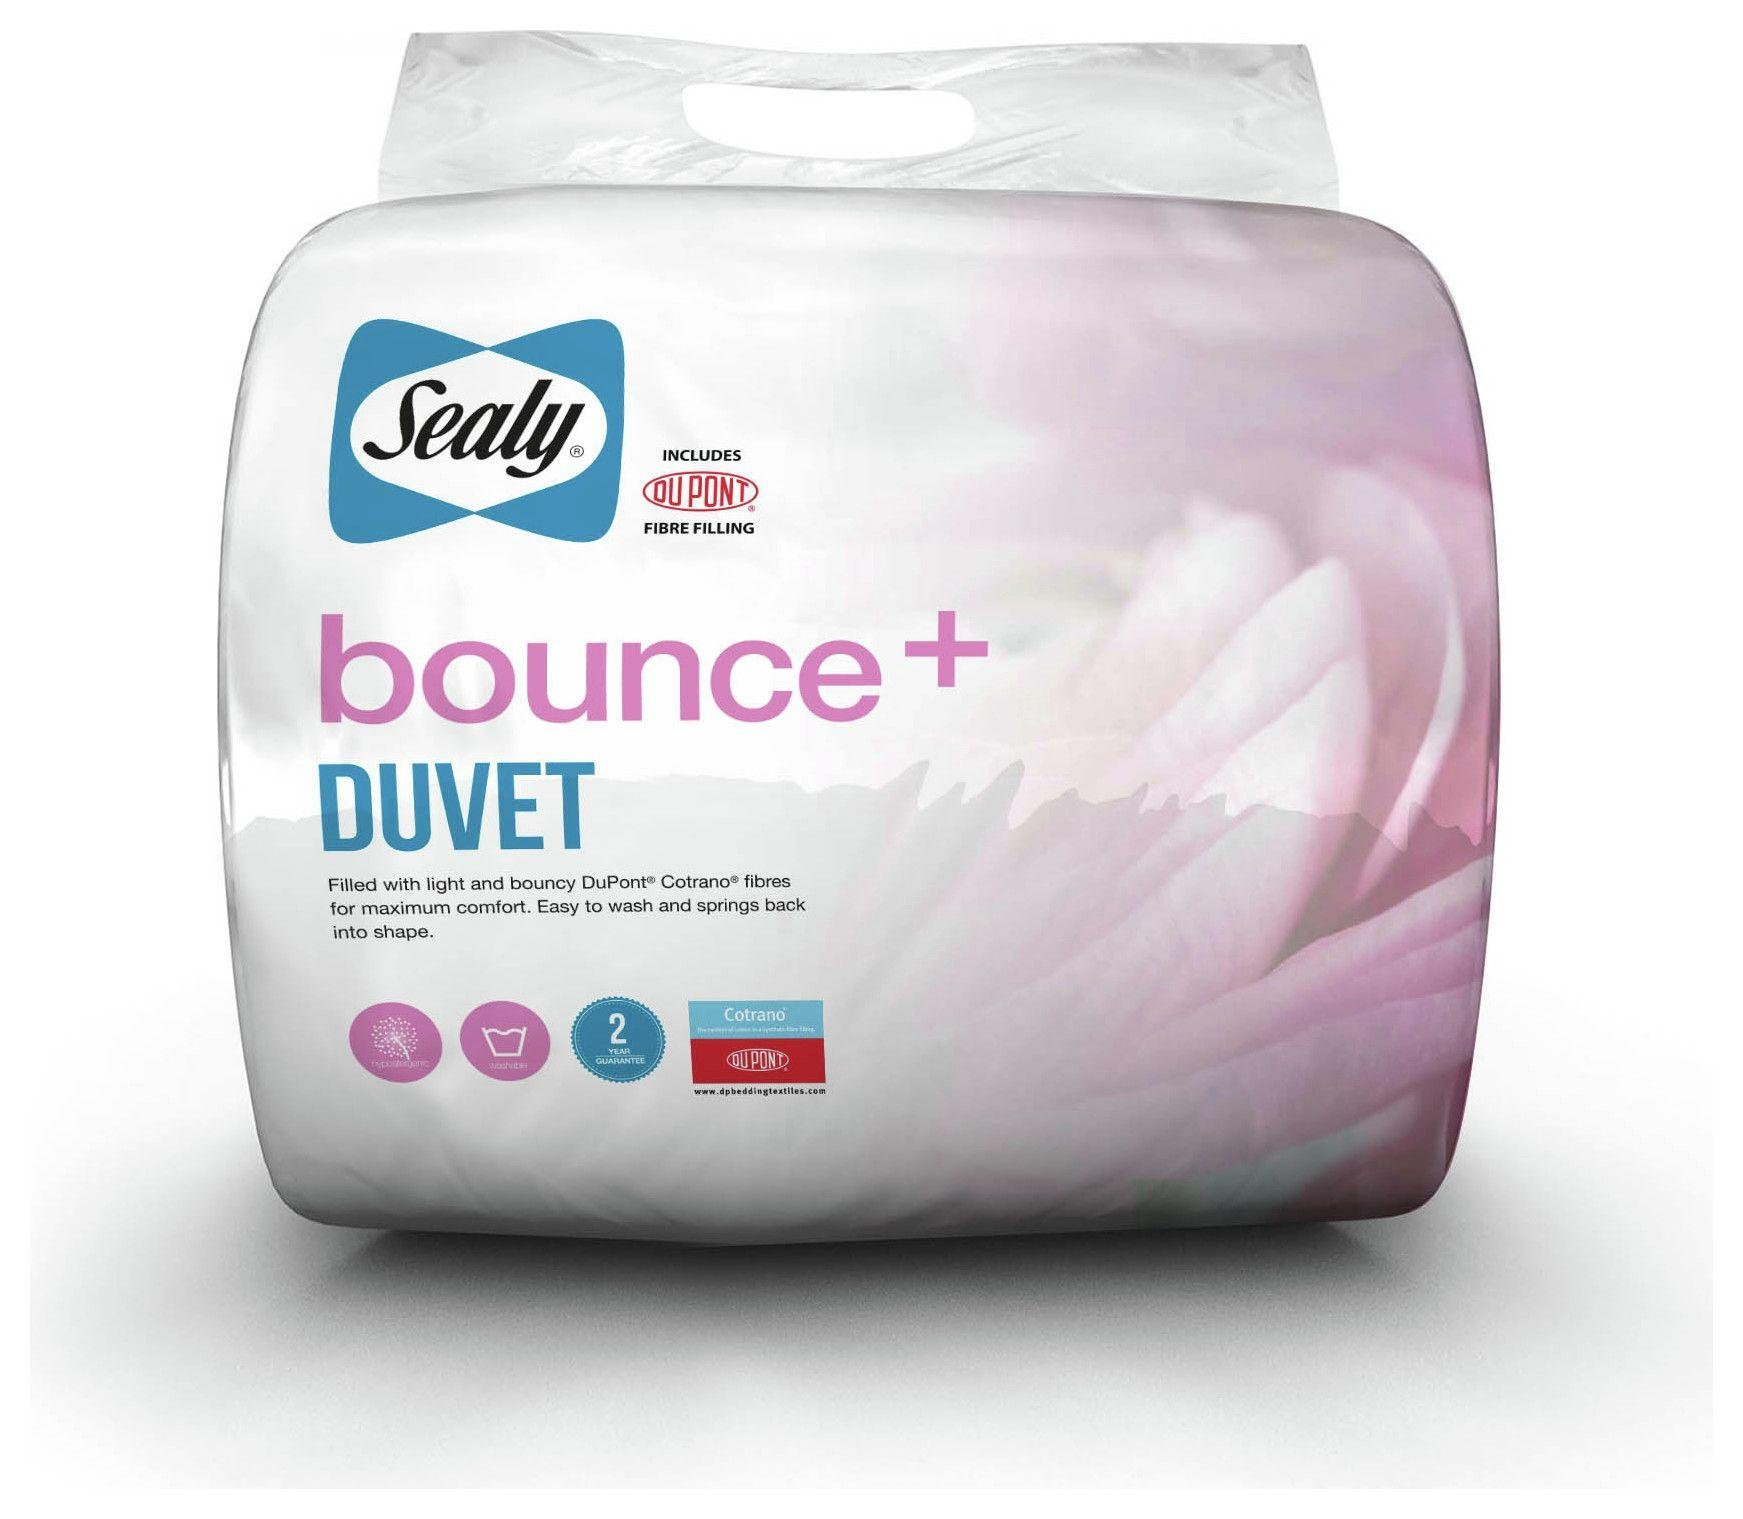 sealy bounce antiallergy 10.5 tog duvet  superking